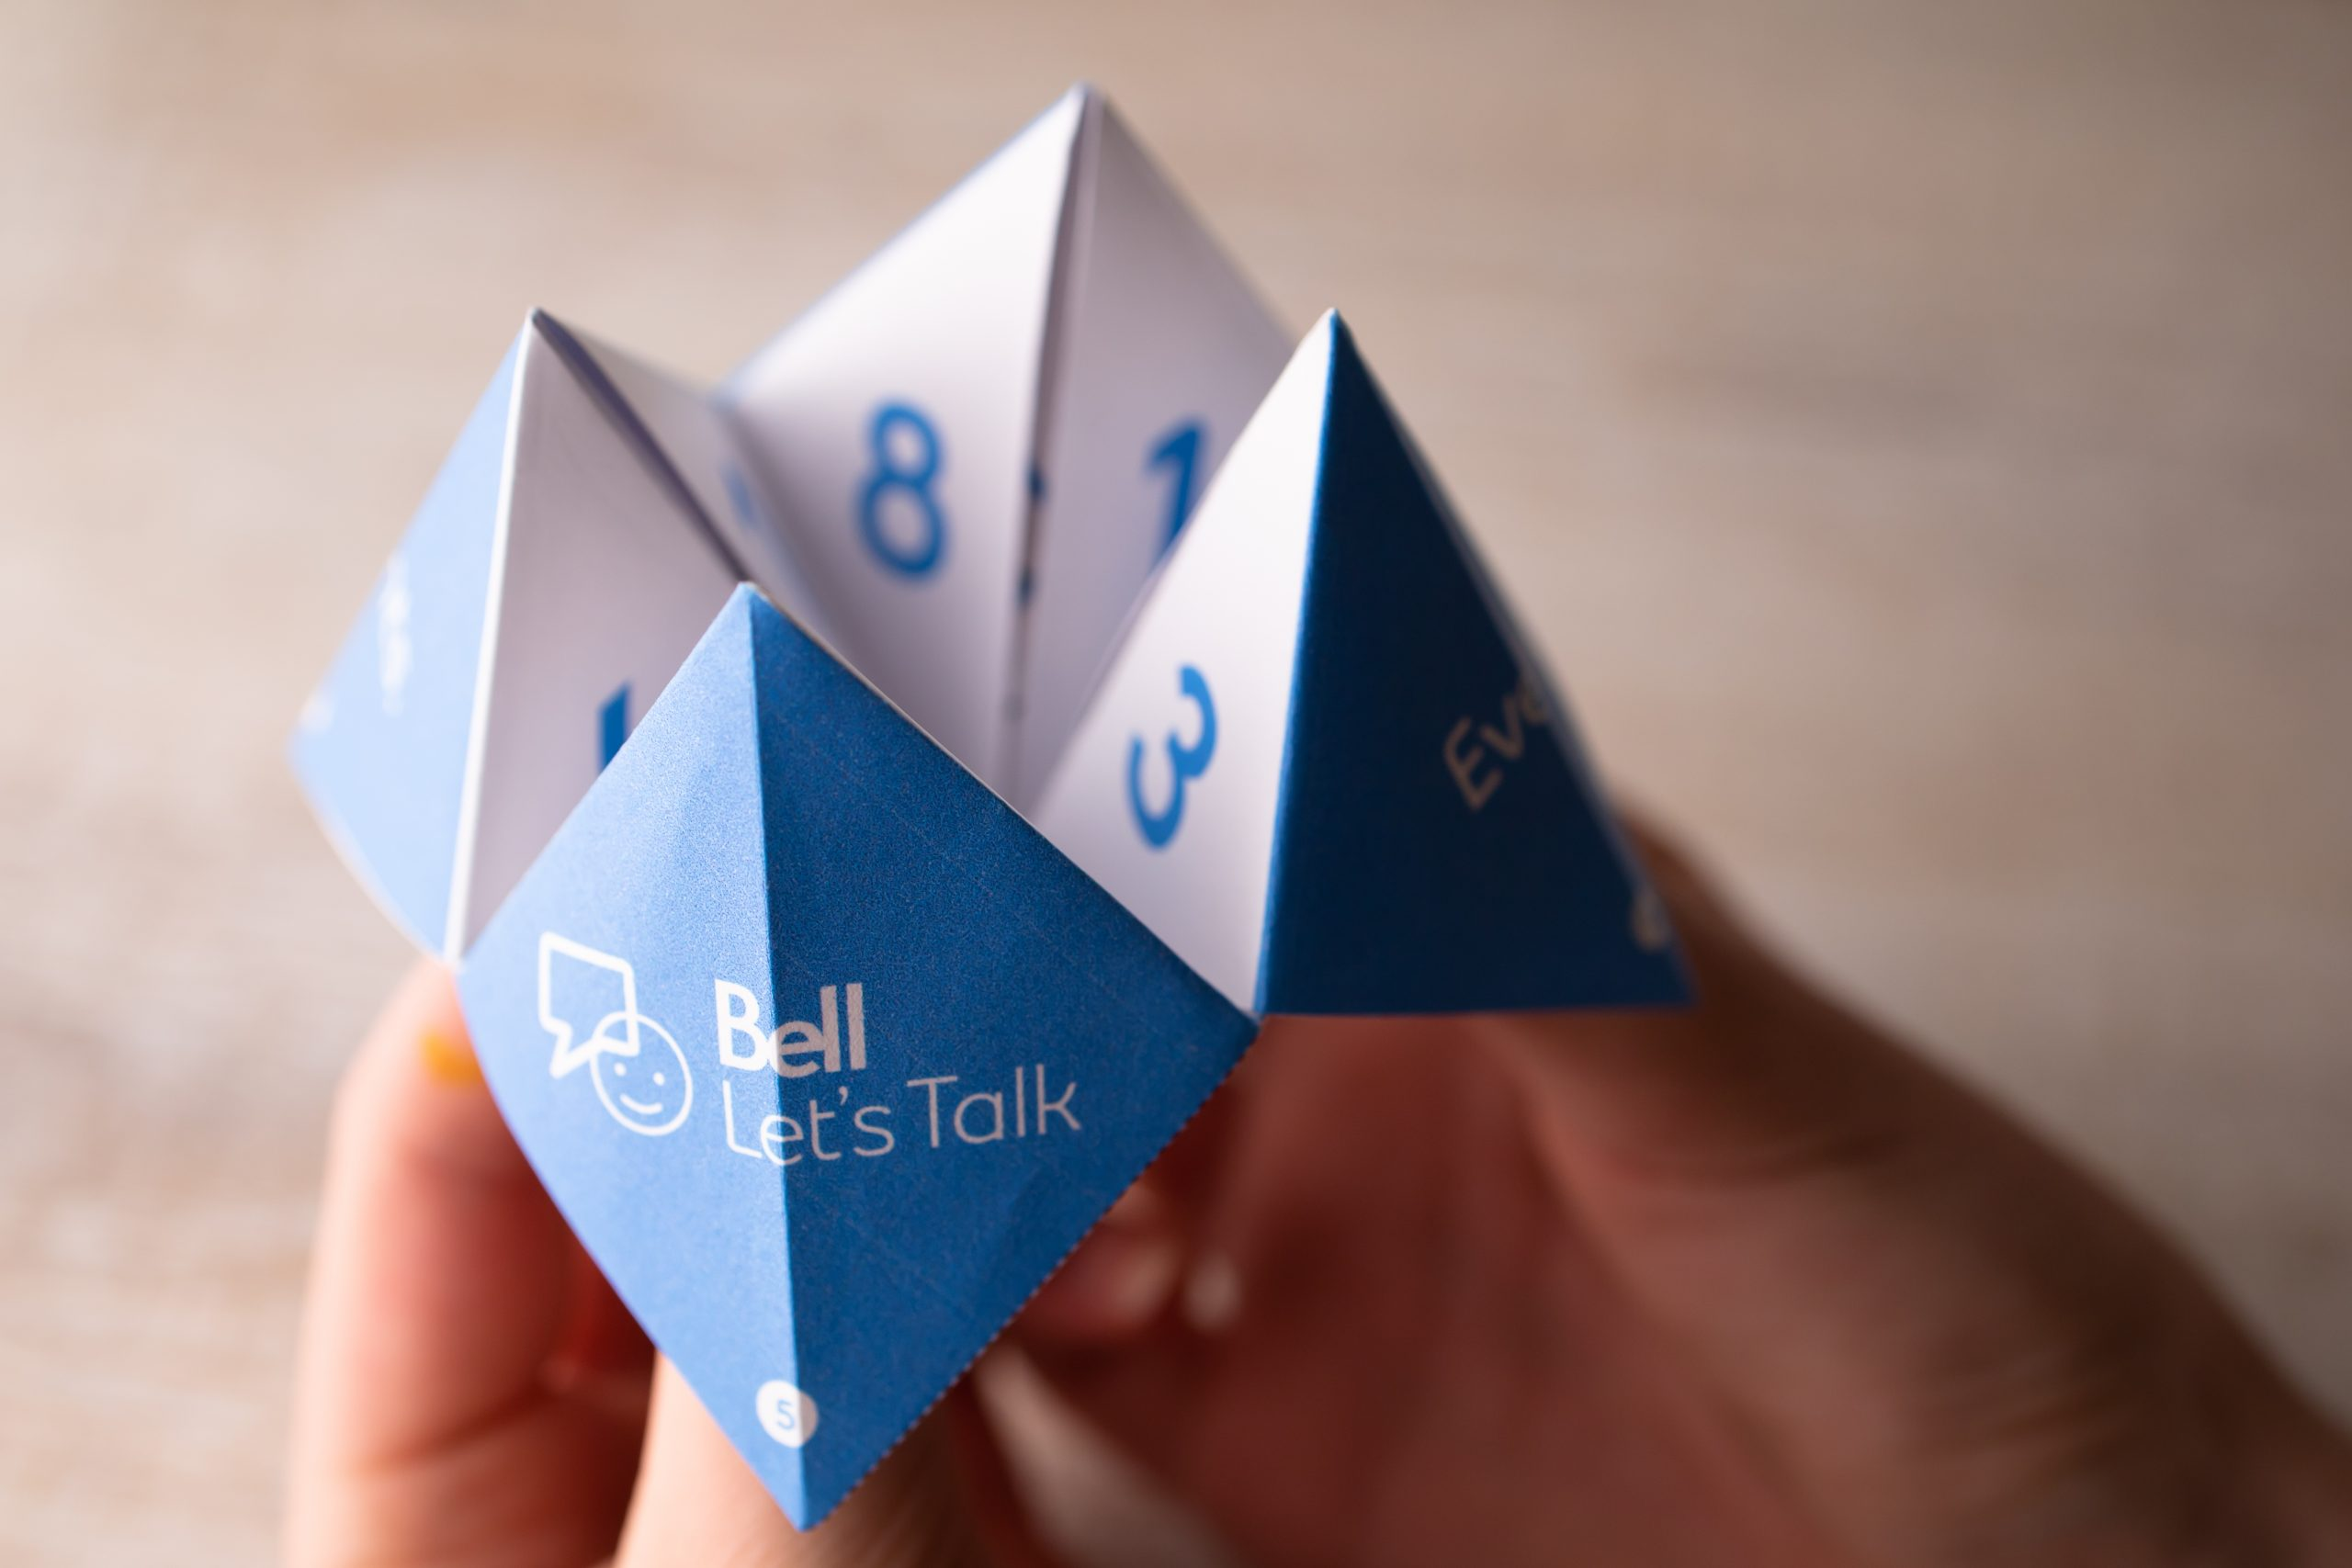 bell lets talk cootie catcher